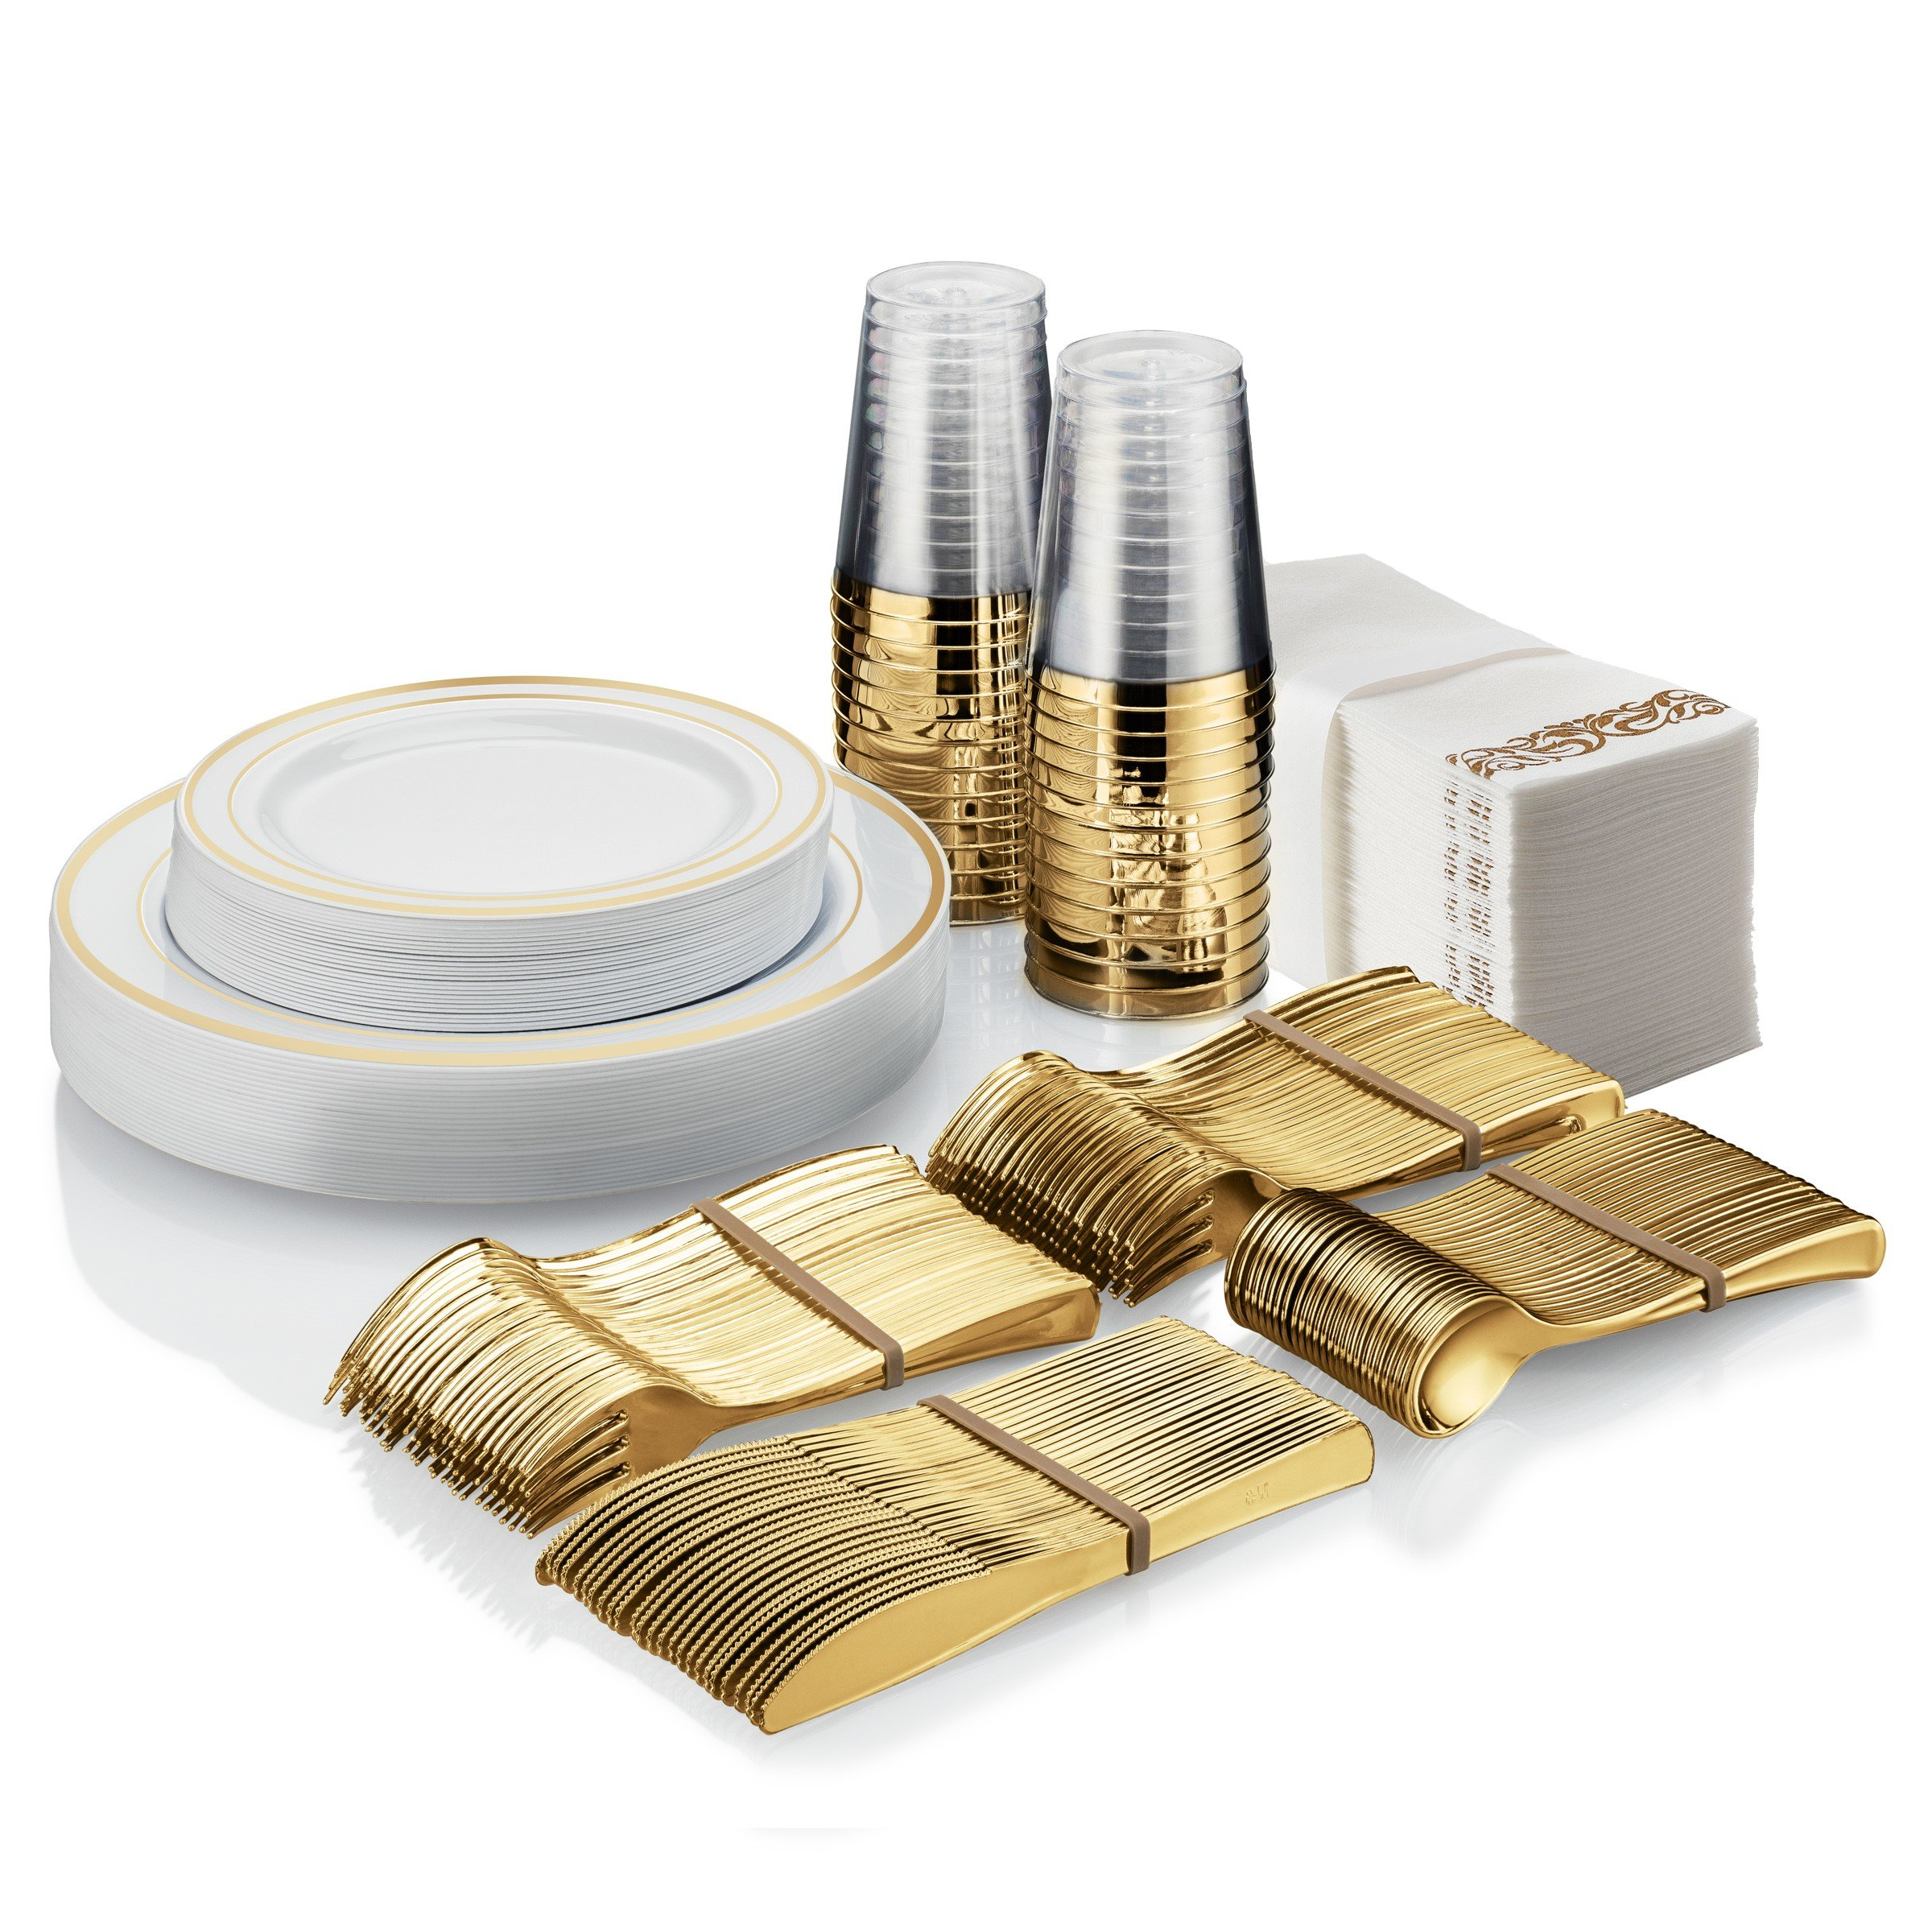 BloominGoods Party & Wedding Hard Plastic Disposable Tableware Plates Set - Gold Rimmed Dinner & Dessert Plates & Tumblers, Gold Plastic Silverware, Gold Napkins (25 Guests - 225 Pieces)